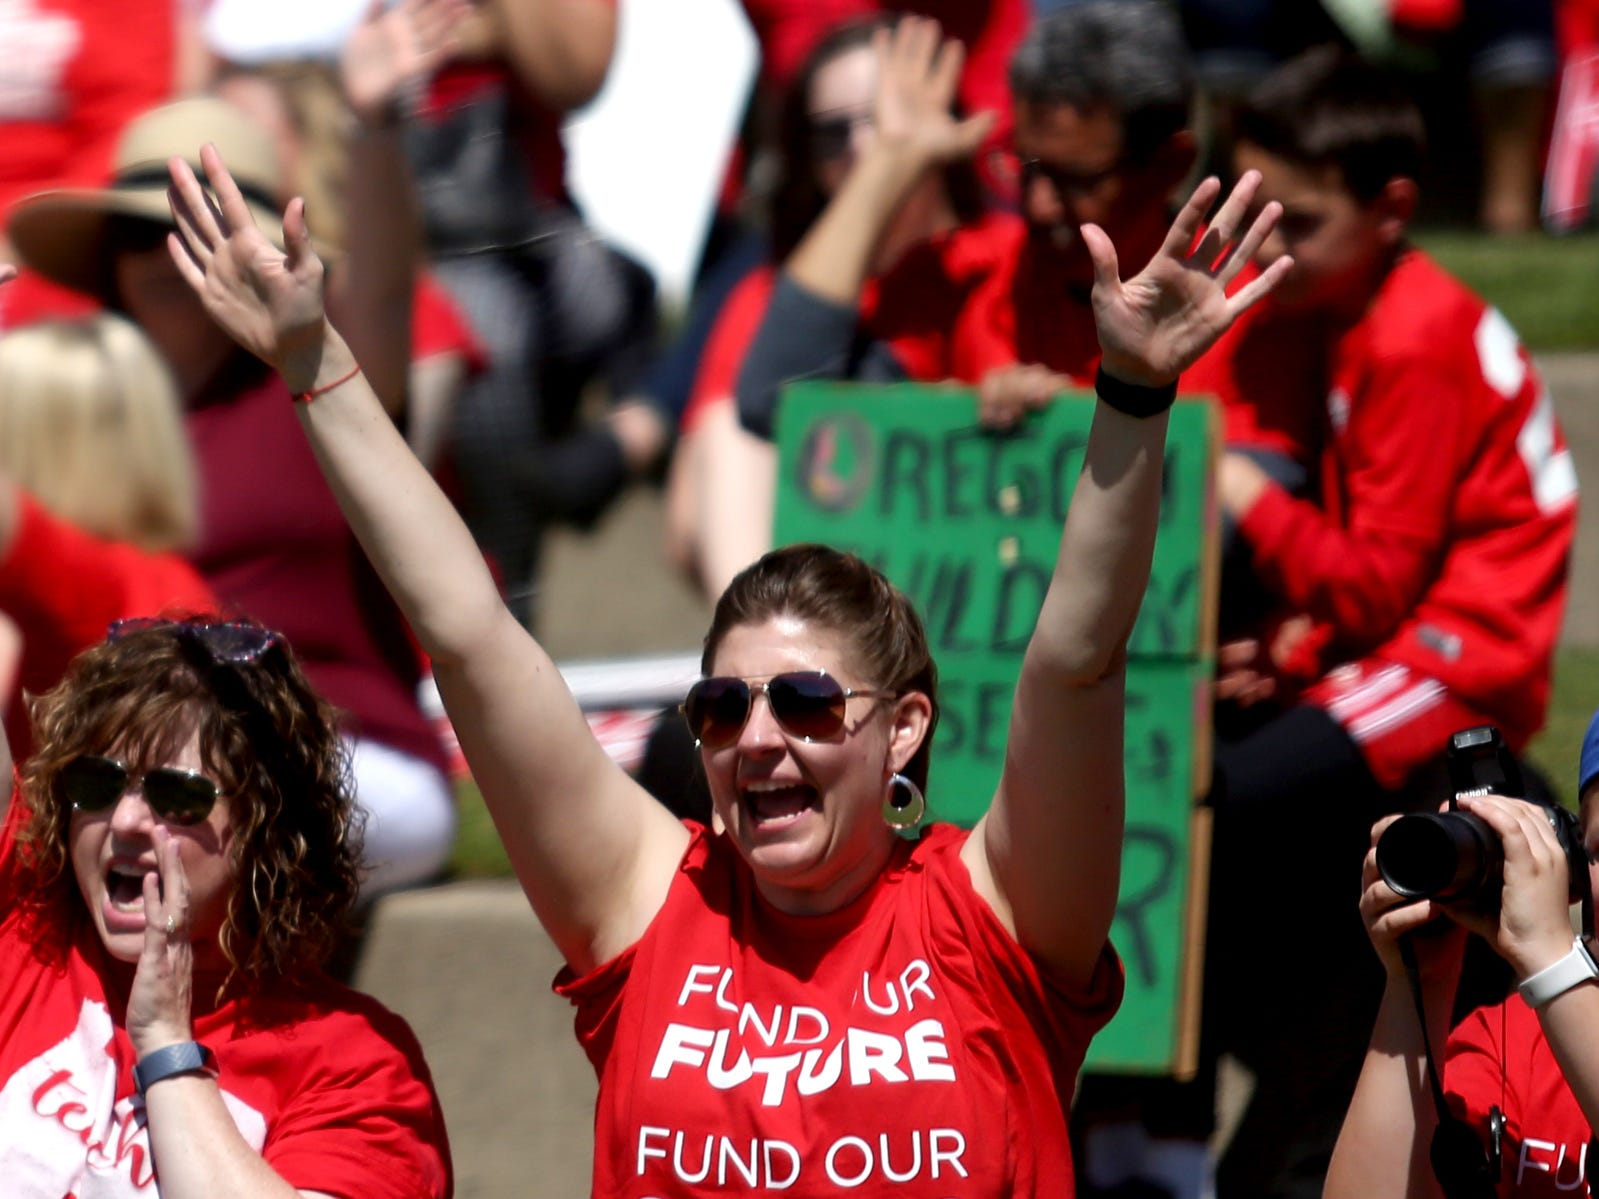 Cortney Clendening, a first grade teacher at Clear Lake Elementary School, cheers as thousands of teachers and education activists rally for a day of action starting at Riverfront Park in Salem on May 8, 2019. Schools across Oregon closed early or were closed for the day as teachers walked out to demand more school funding to address large class sizes, low graduation rates and other concerns.